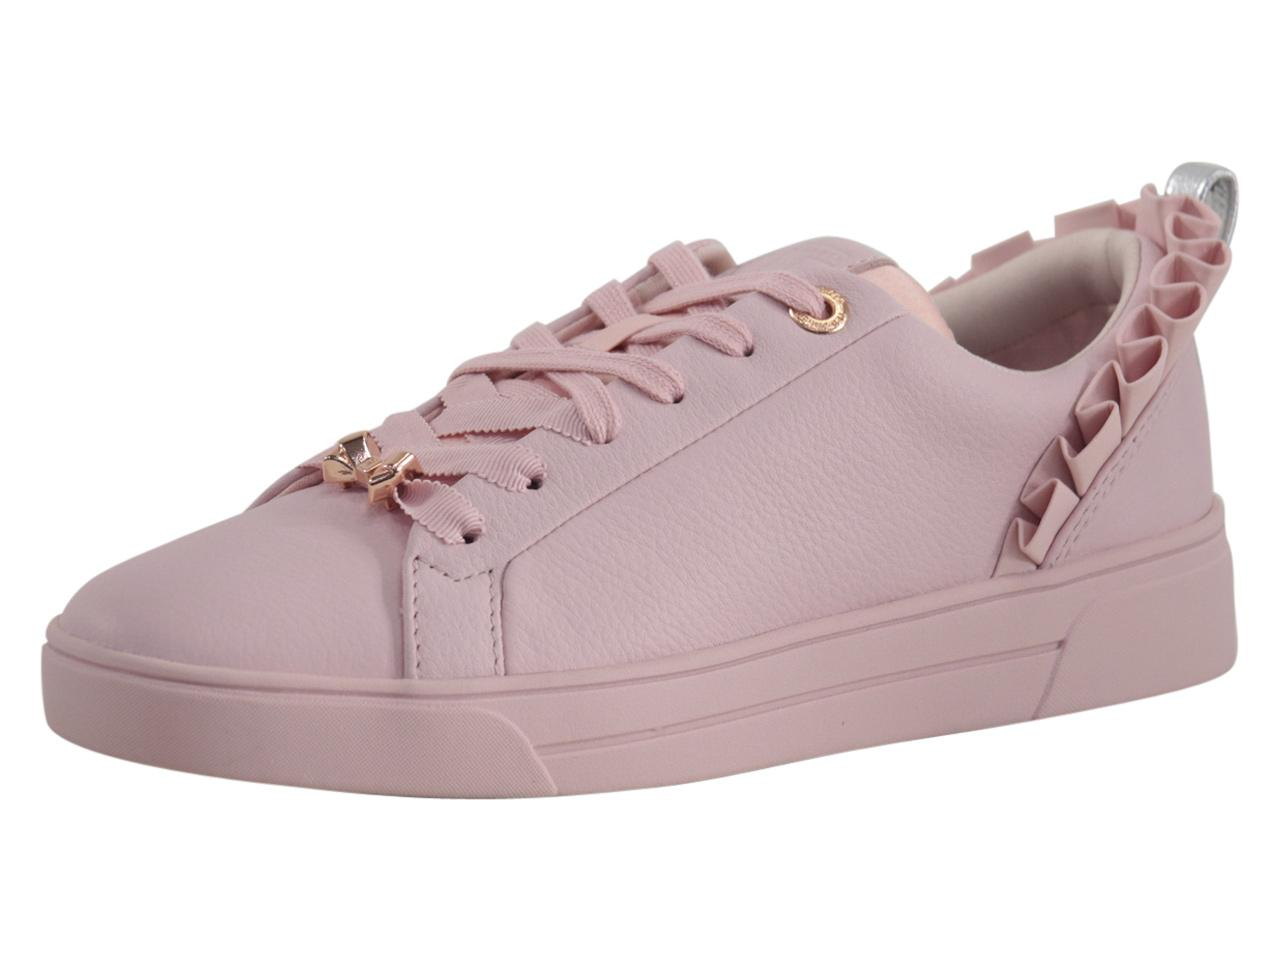 Ted Baker Women's Astrina Ruffle Sneakers Shoes